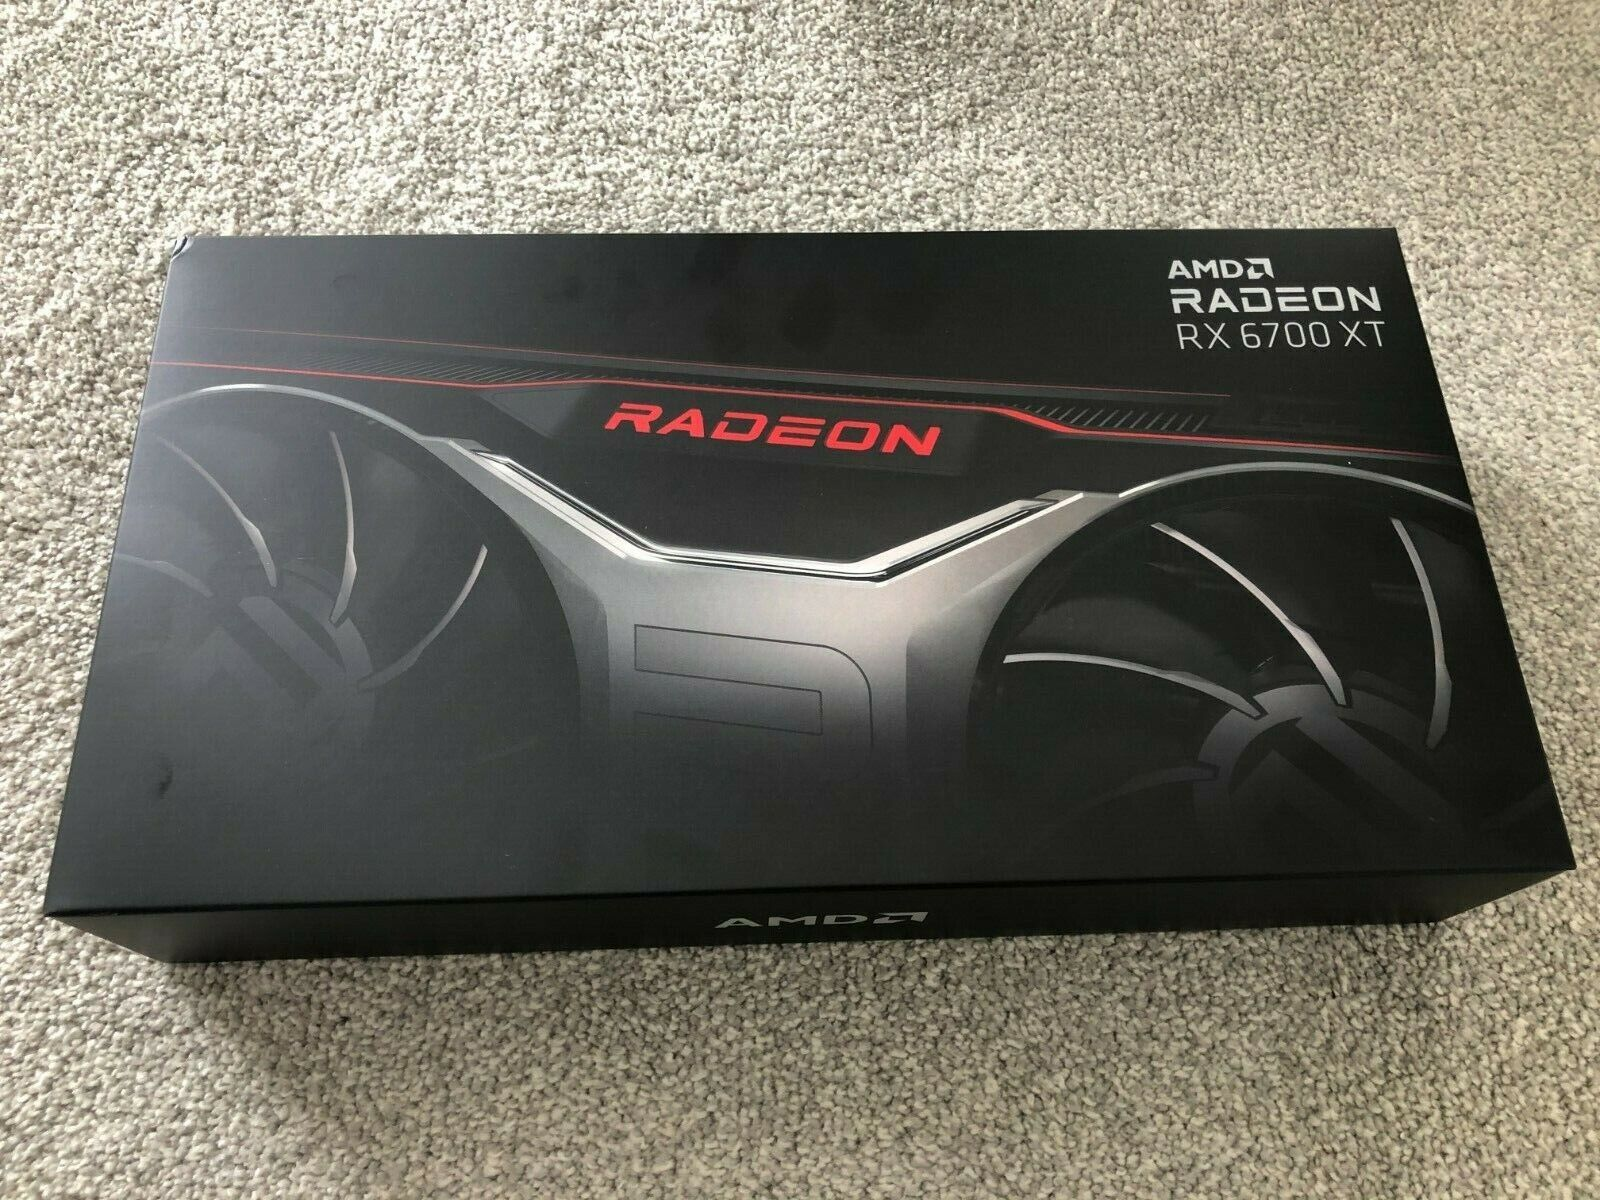 AMD Radeon RX 6700 XT 12GB GDDR6 Graphics Card - IN HAND